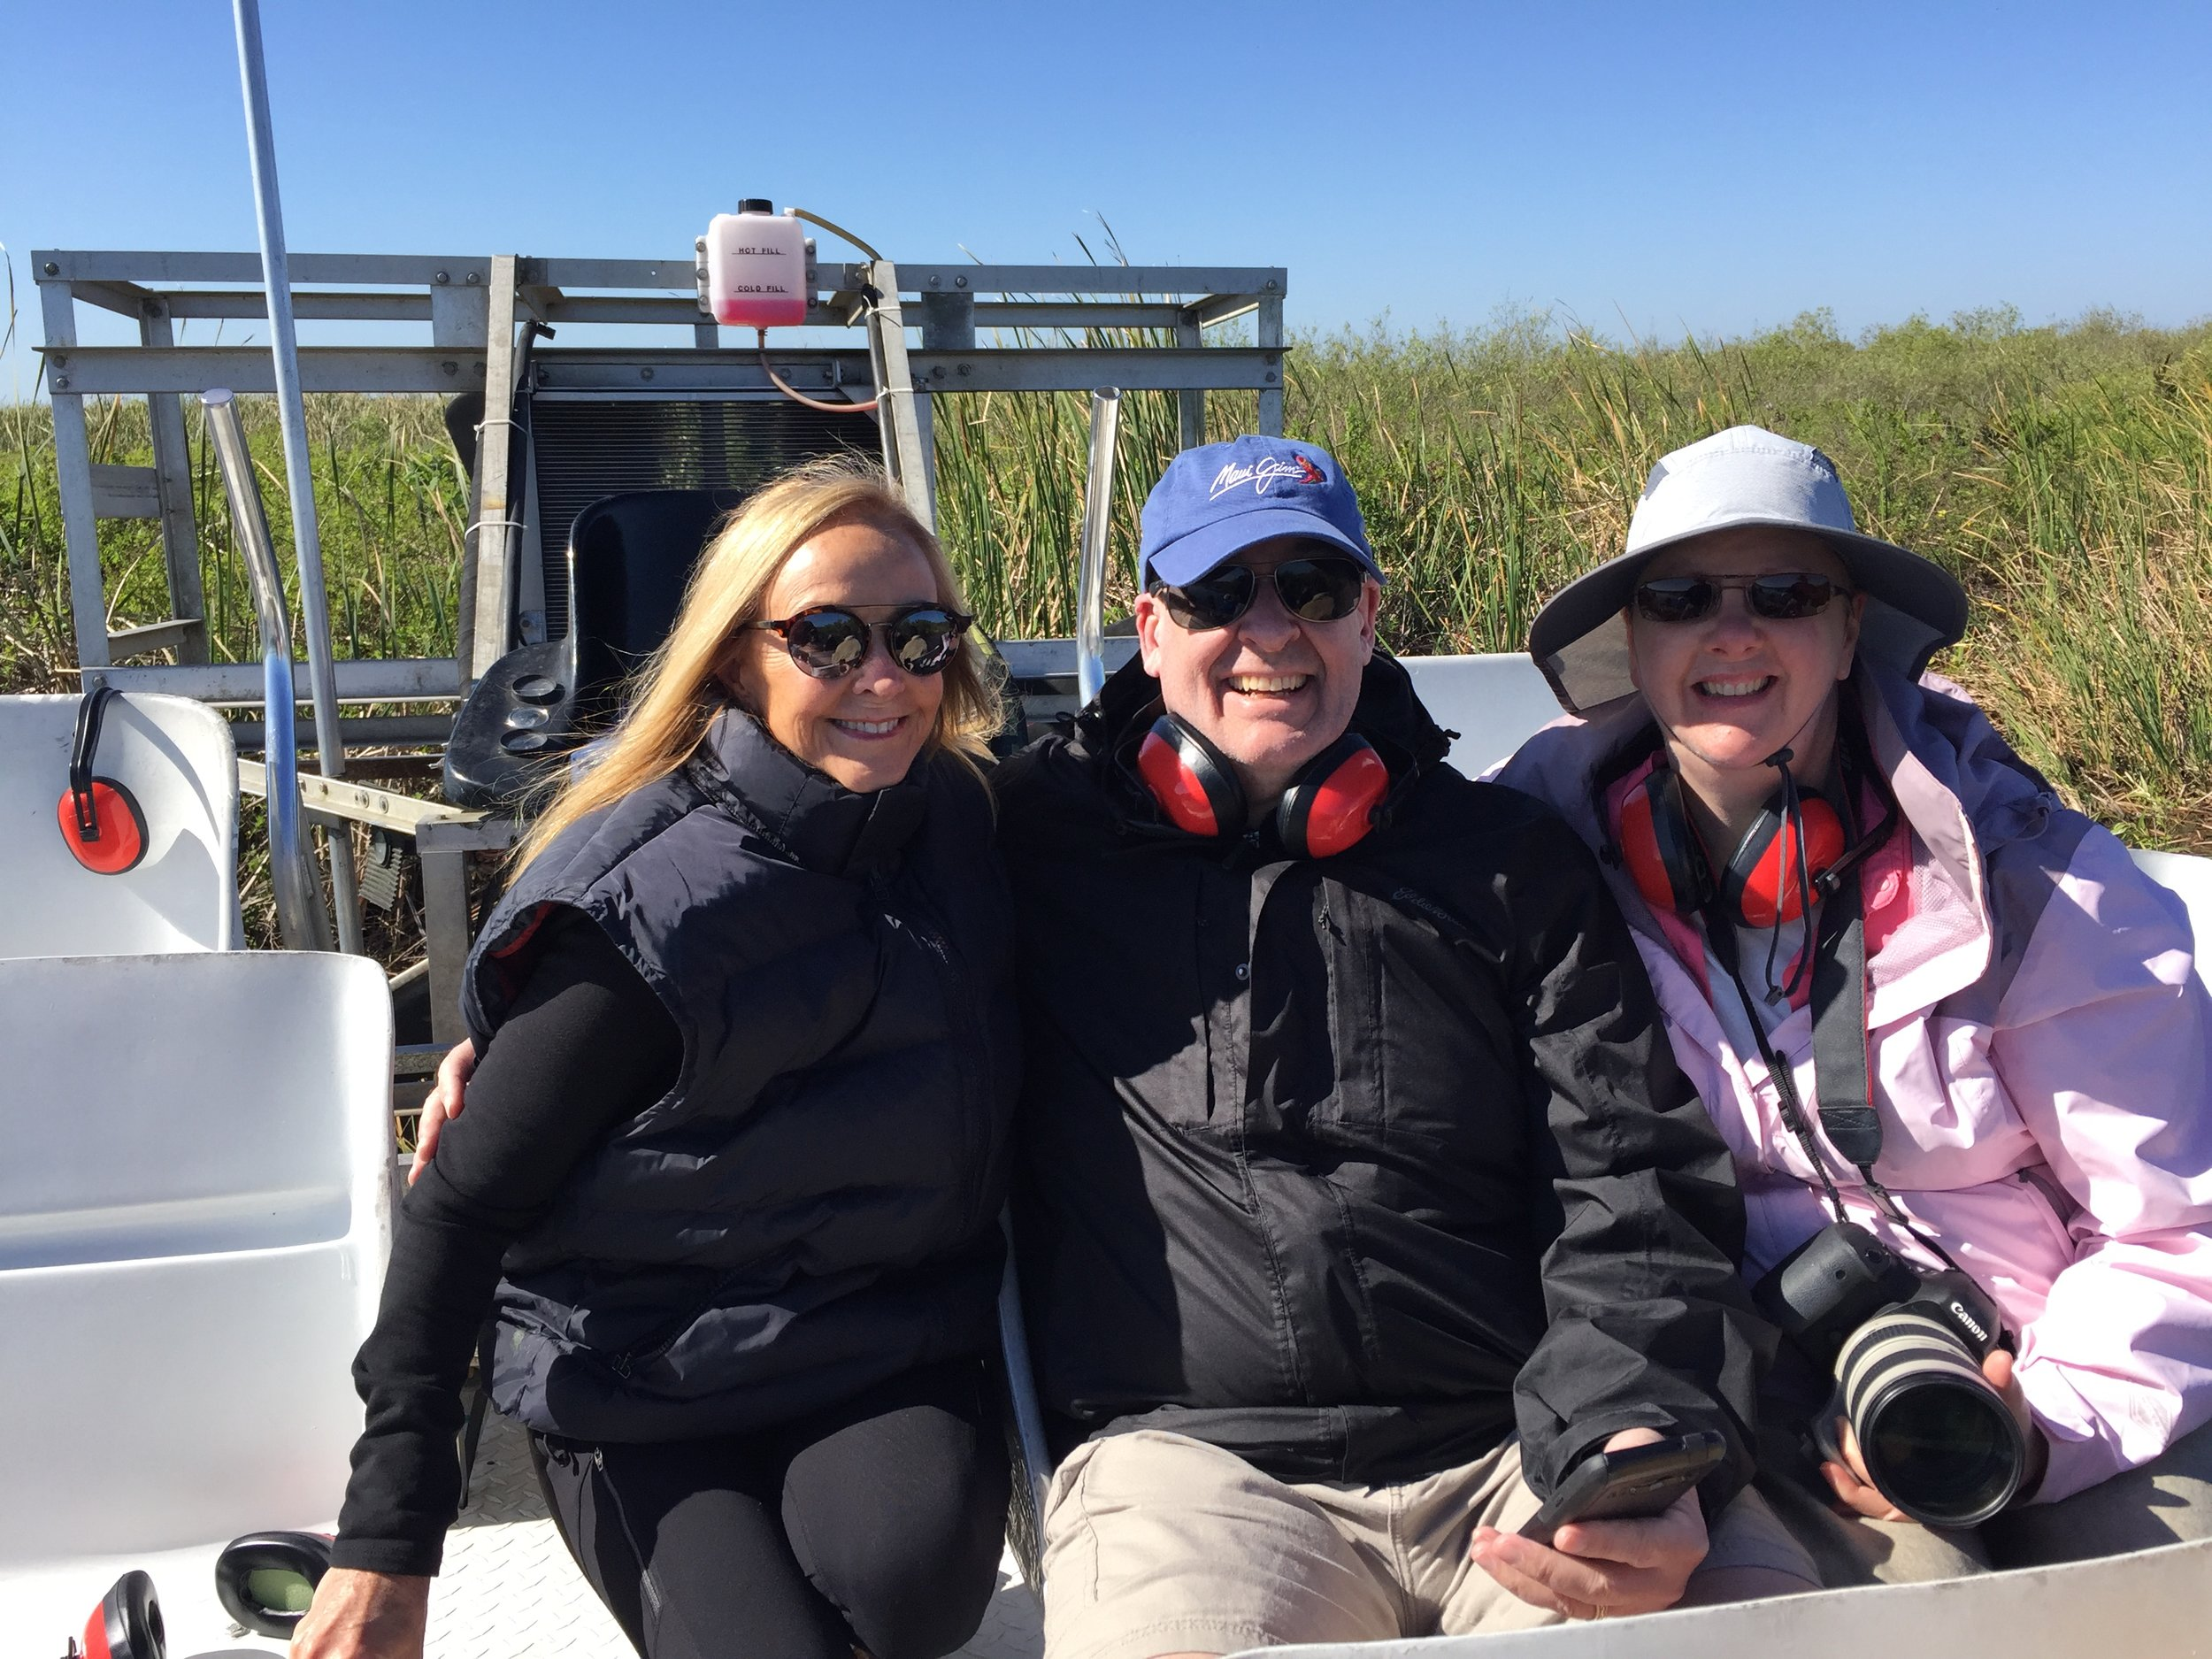 Here I am holding my Canon camera with a 70 x 200 lens with Richard Anderson and Linda Anderson on an airboat in the Everglades!